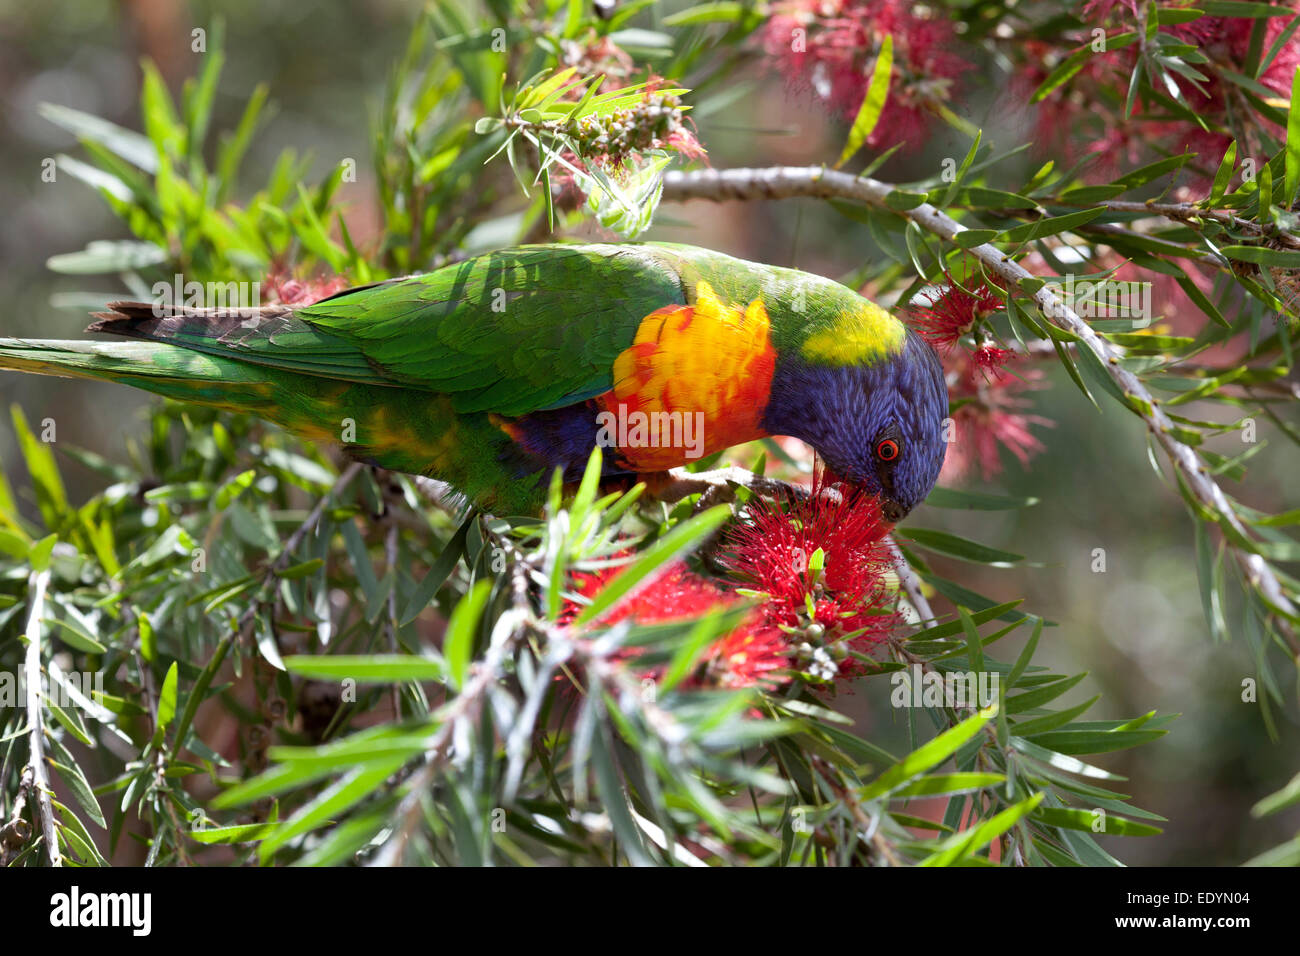 Bottle brush woodland animals - Eating Lorikeet Bird In A Bottle Brush Shrub Australia Stock Image